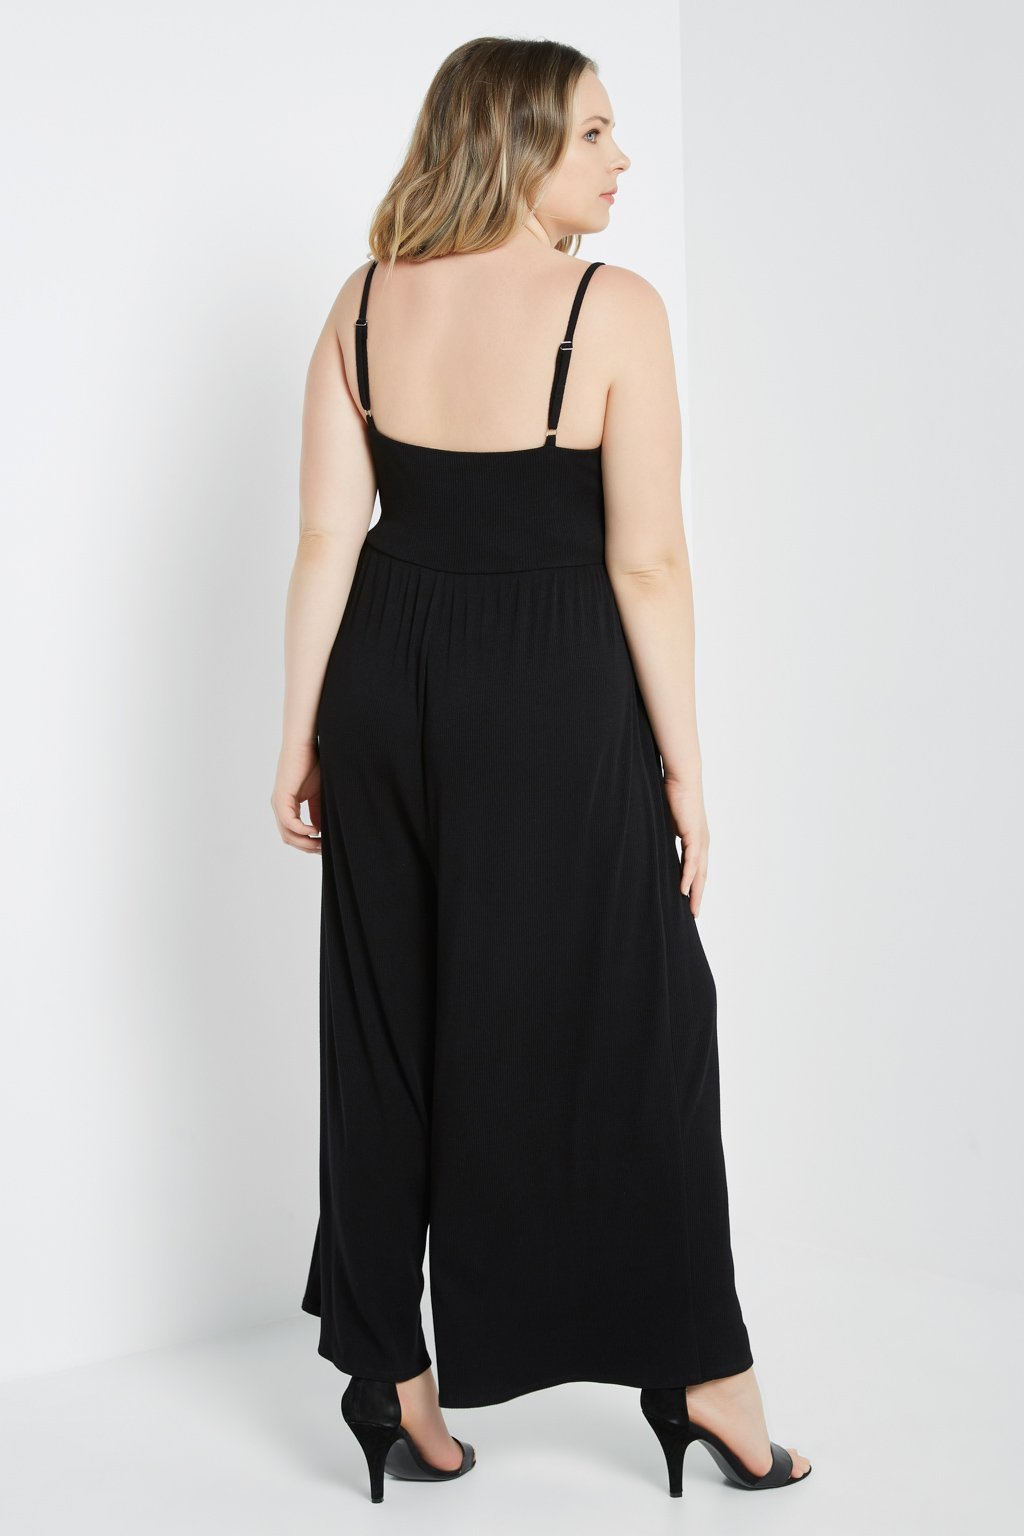 Poshsquare Plus Wide Leg Cami Jumpsuit Plus Size